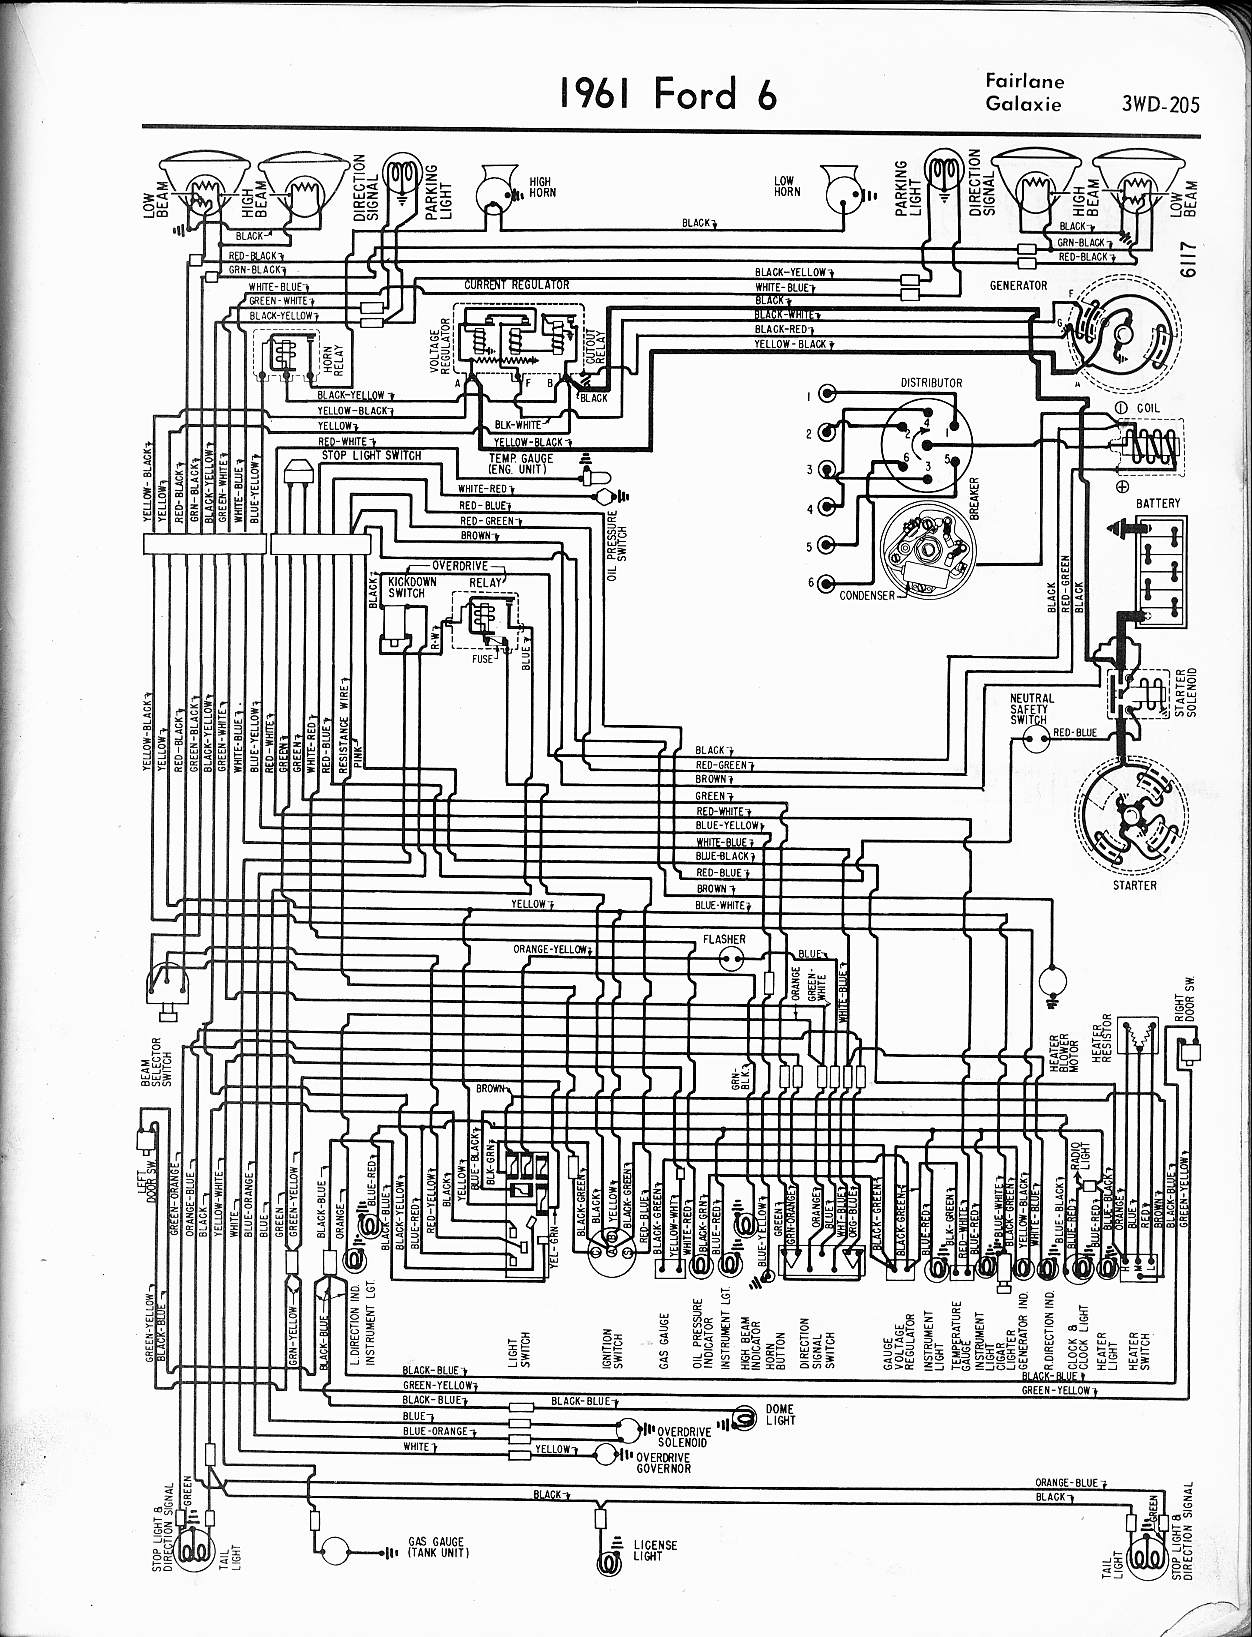 Wire Diagram For 1956 Ford F100 Modern Design Of Wiring Car Library Rh 5 Skriptoase De 1953